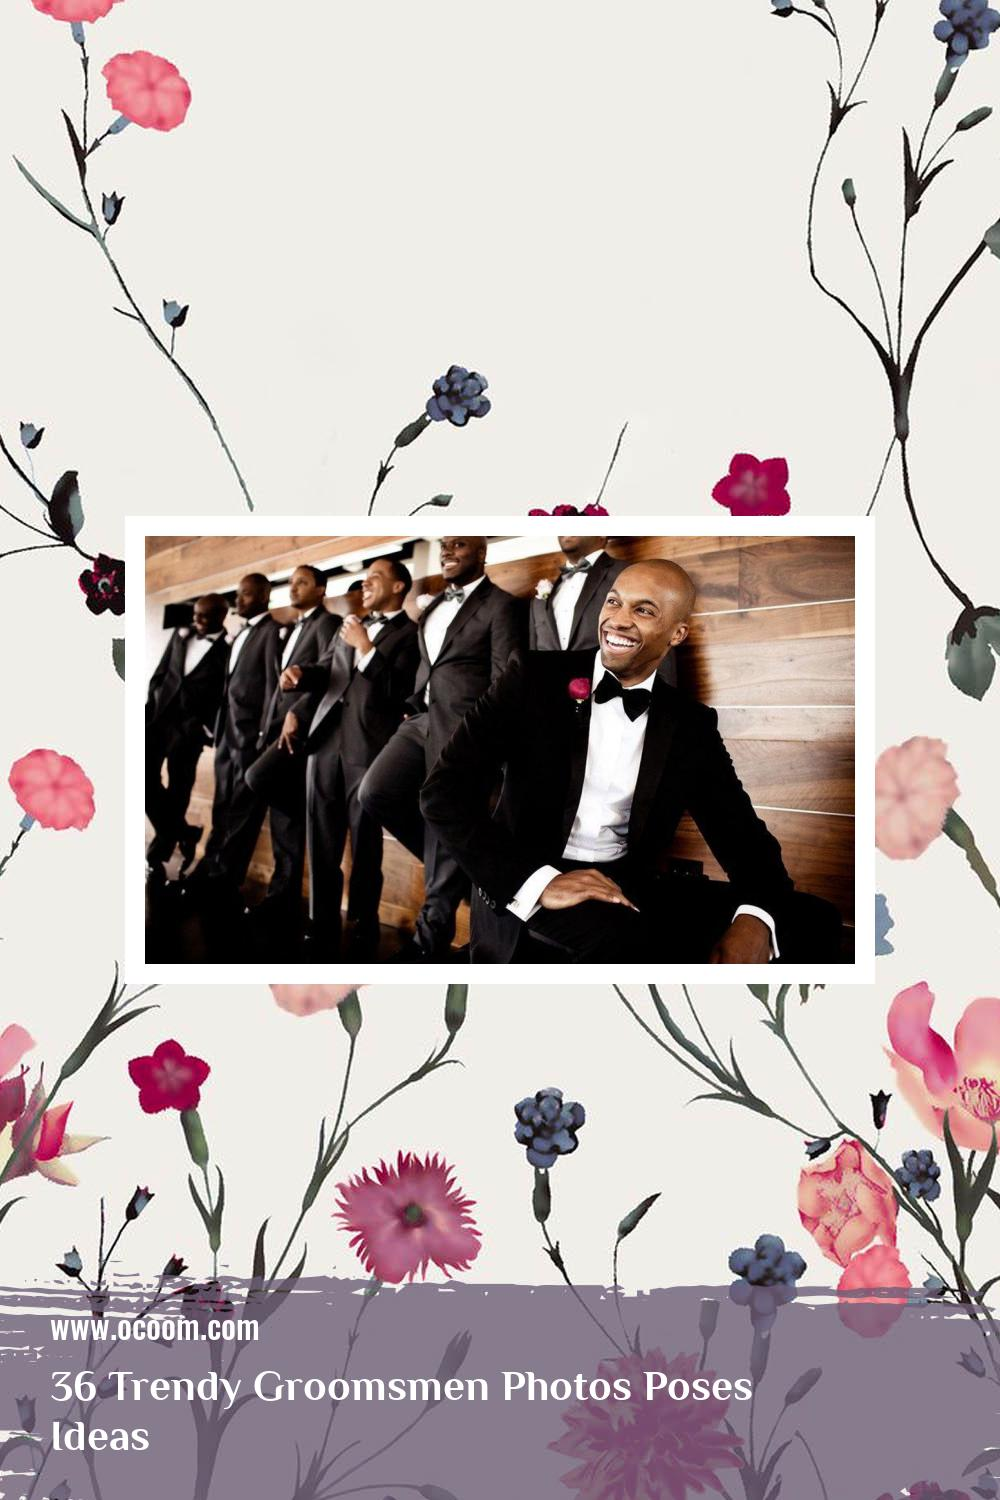 36 Trendy Groomsmen Photos Poses Ideas 17